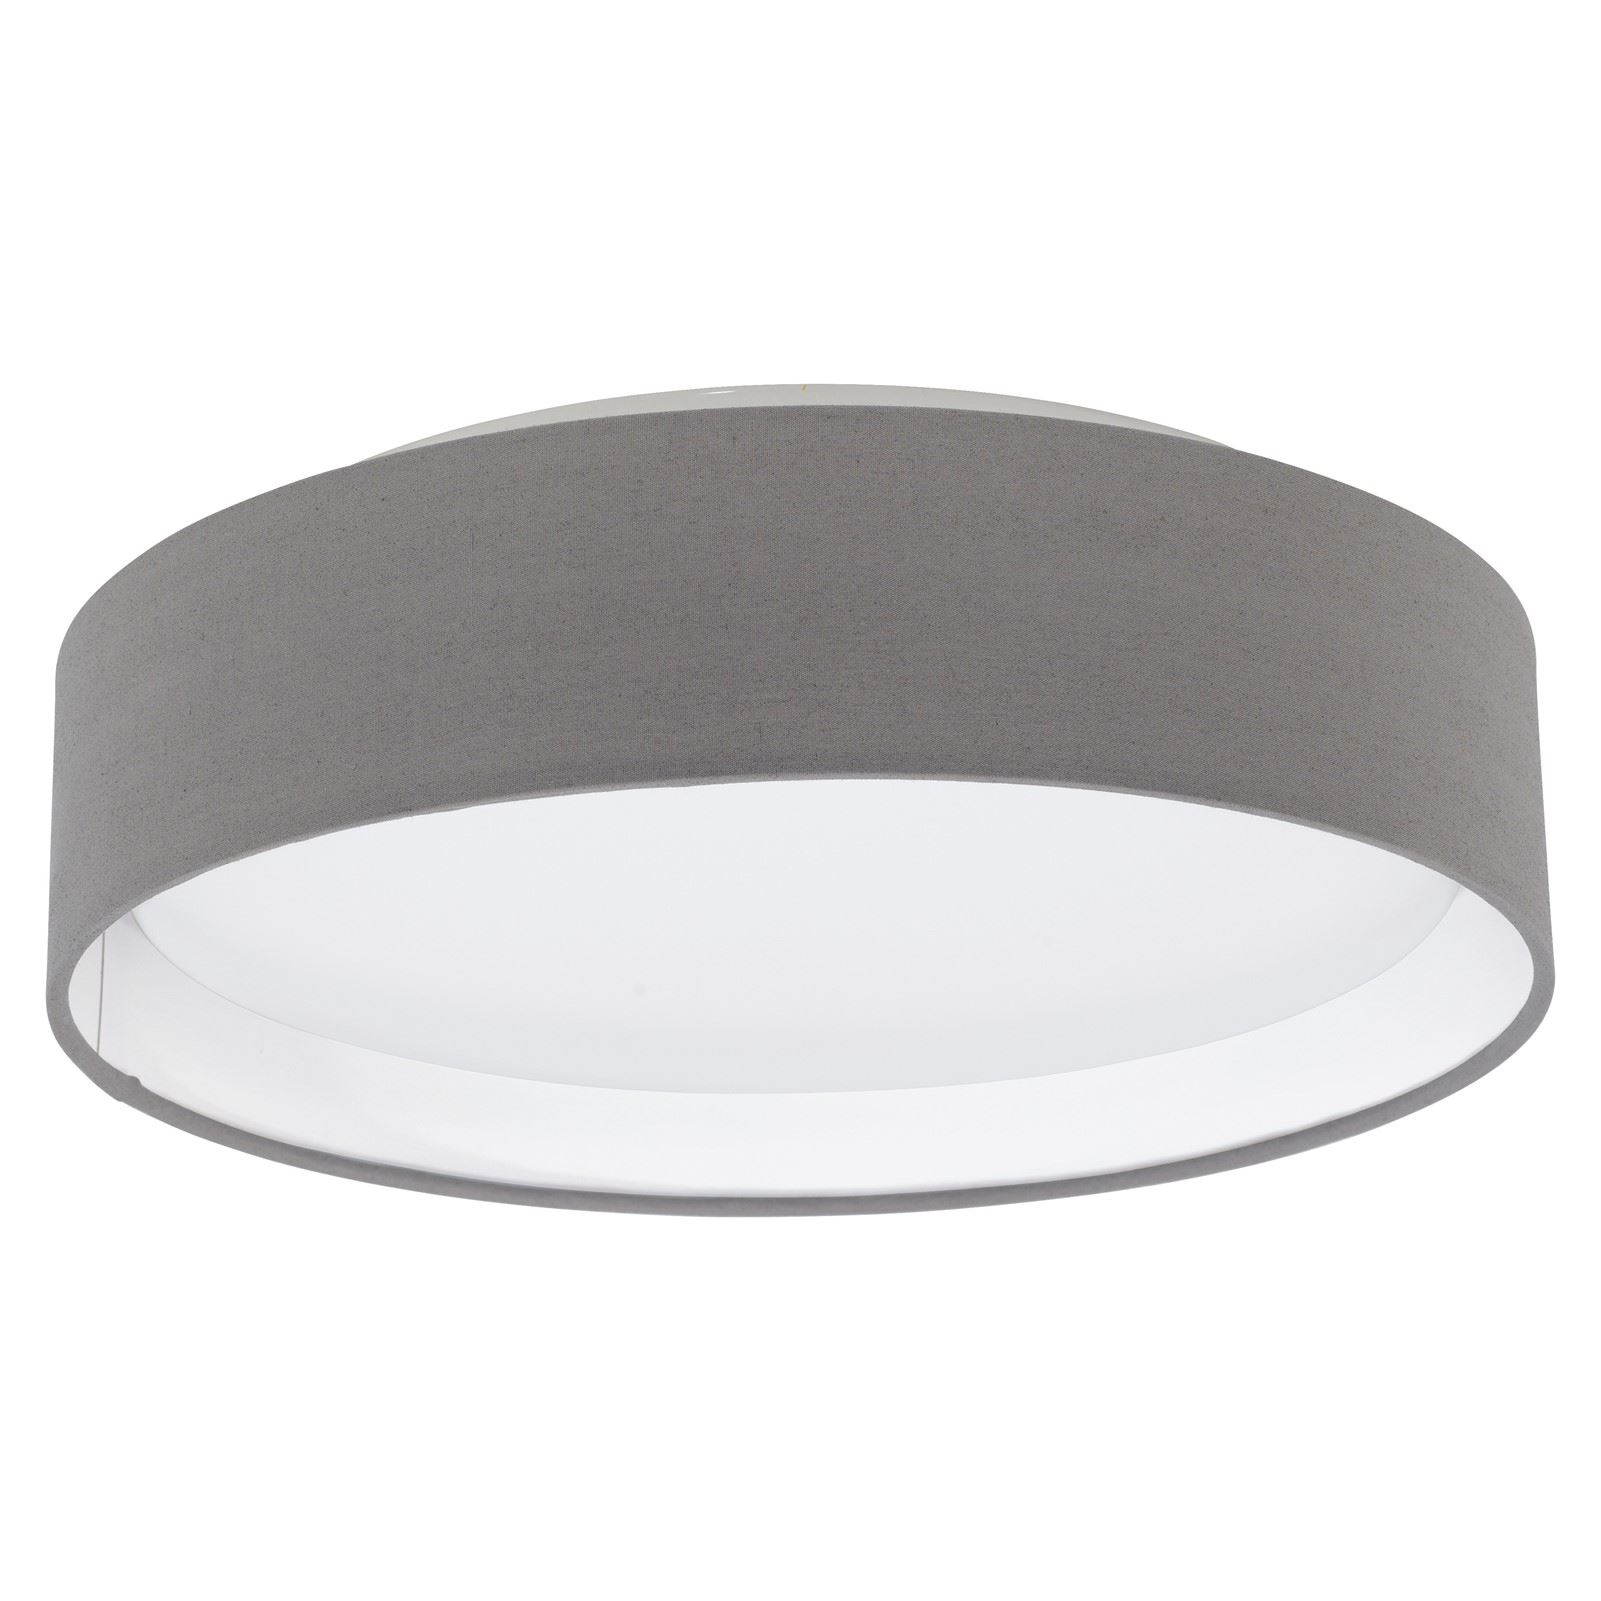 PASTERI LED Ceiling Light Plastic Steel Fabric Anthracite/Brown Shade